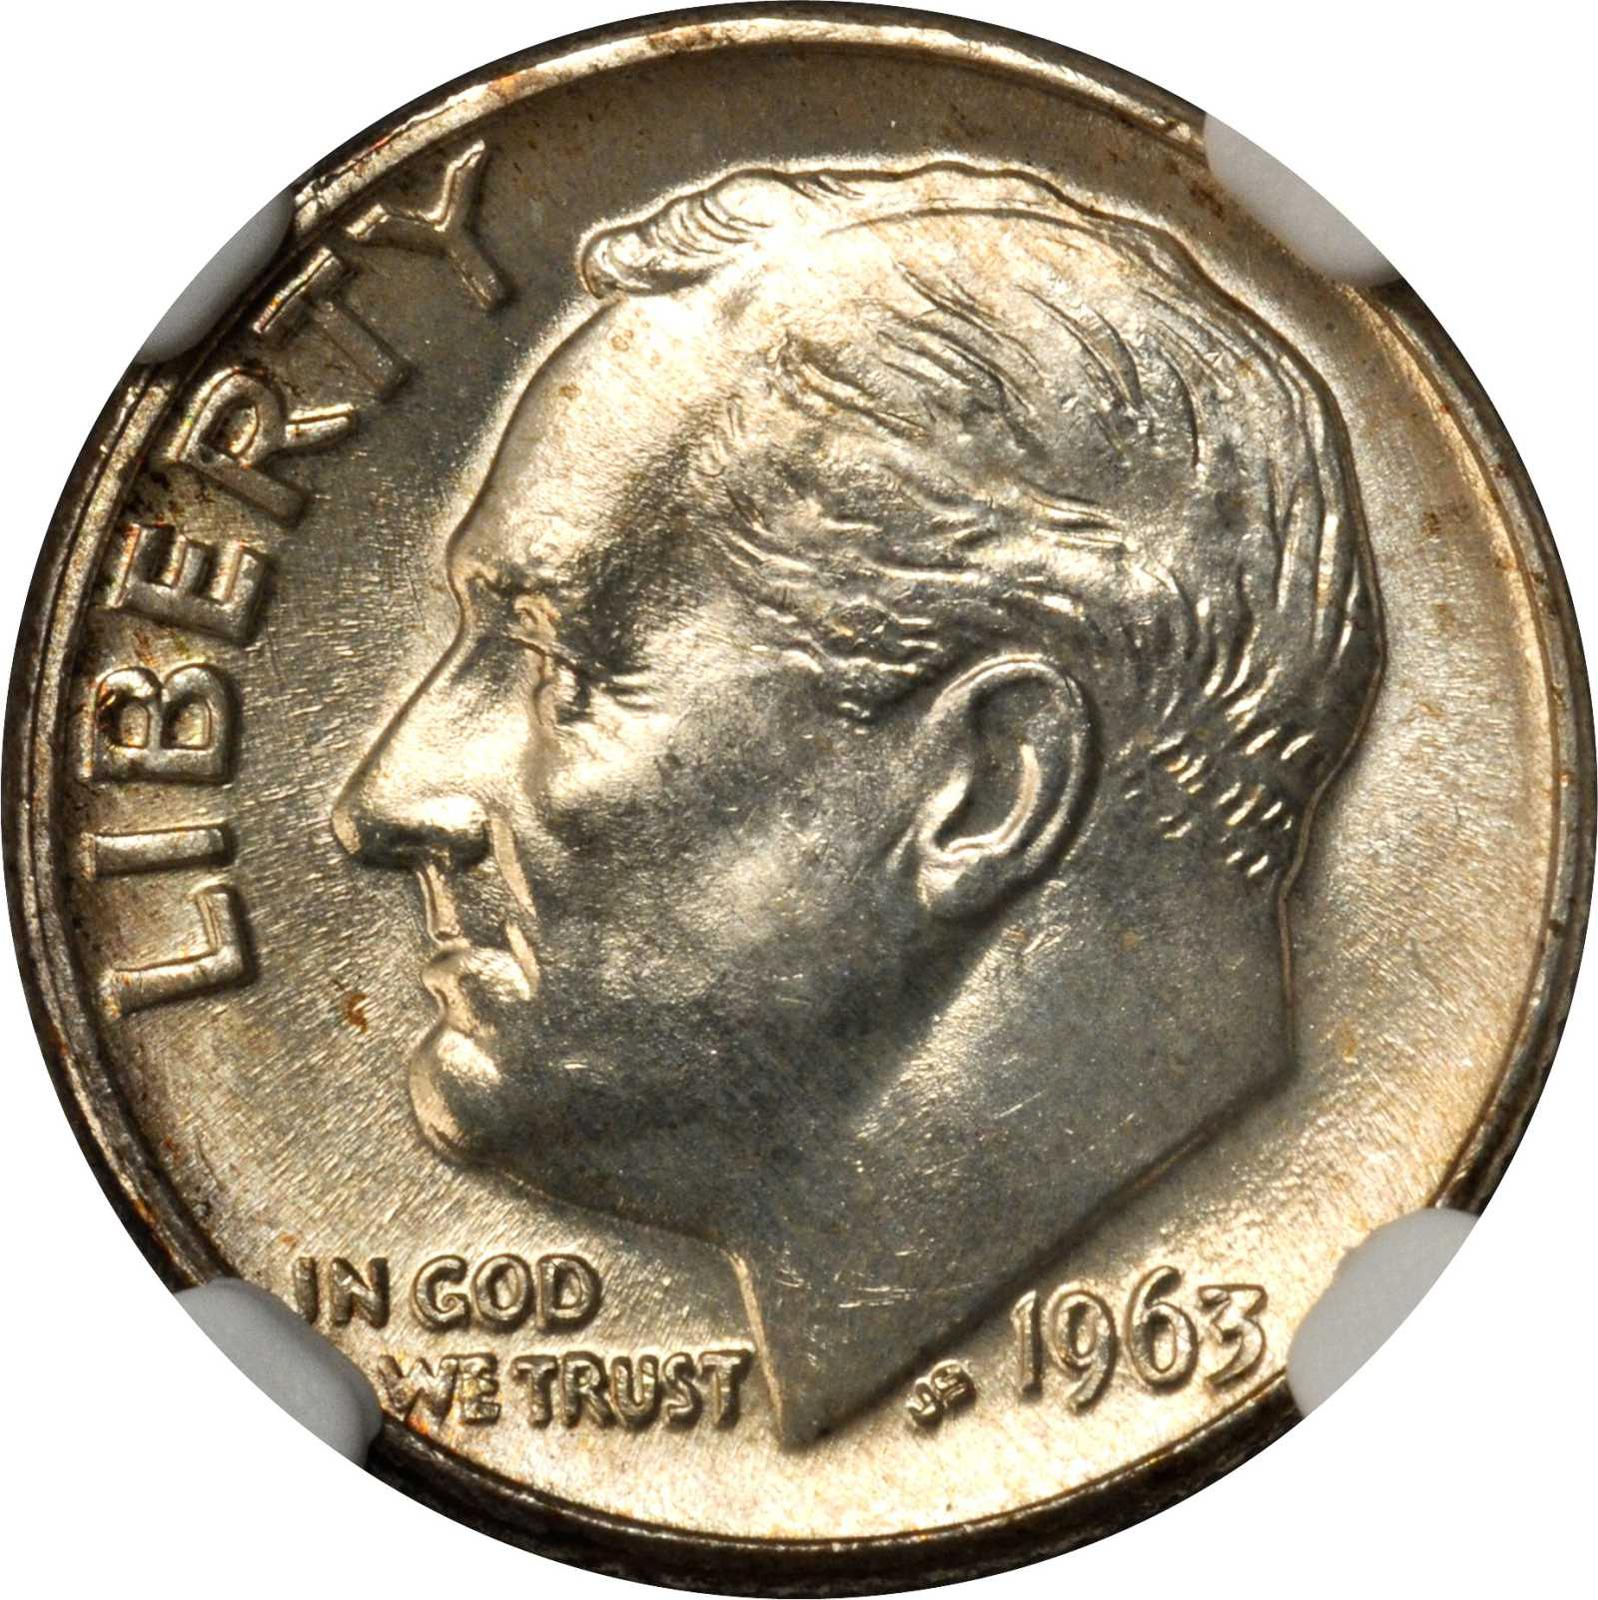 Value of 1963-D Dime | Sell and Auction, Rare Coin Buyers